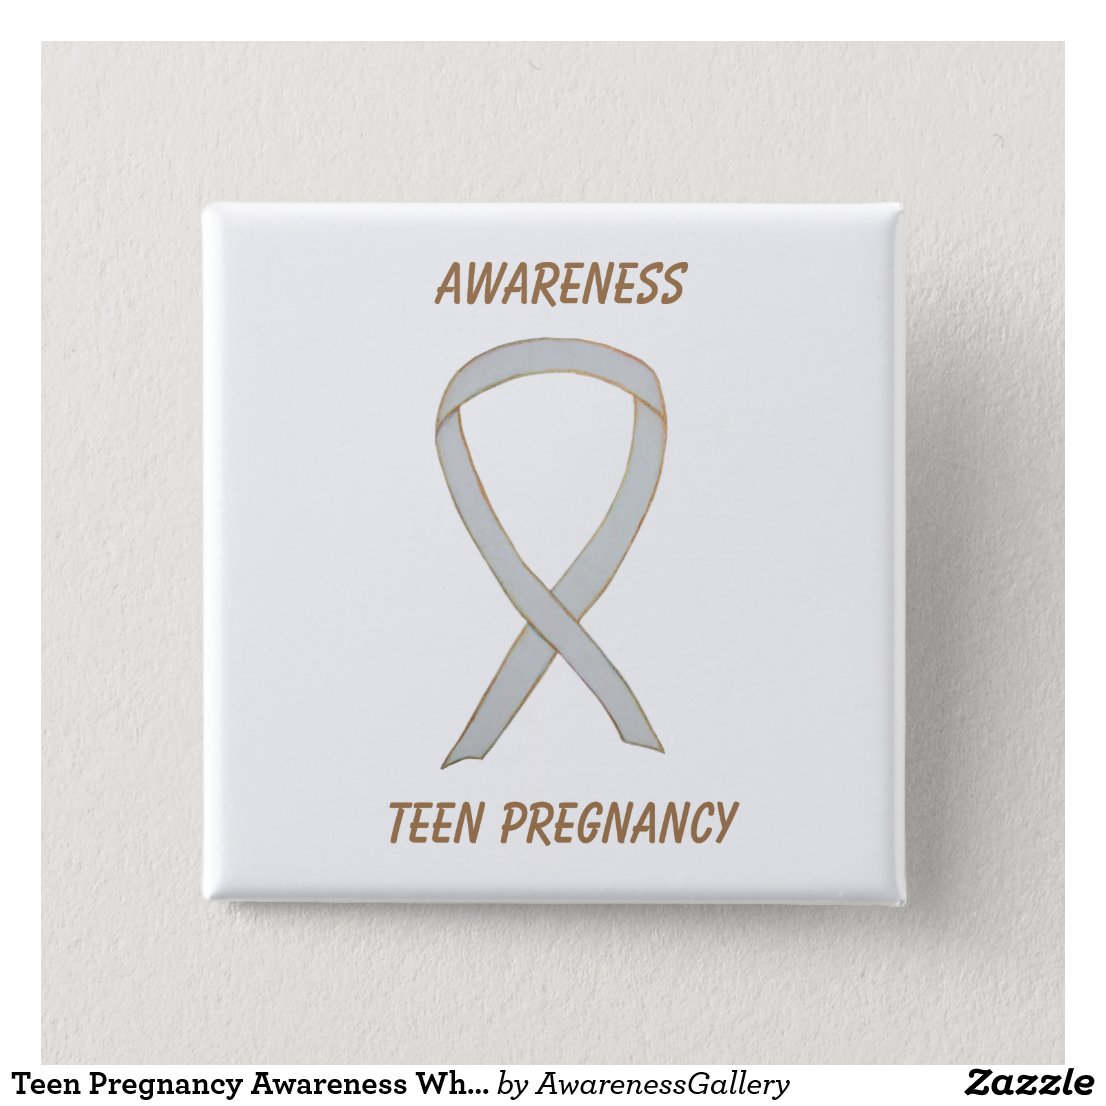 Teen Pregnancy Awareness White Ribbon Custom Pin